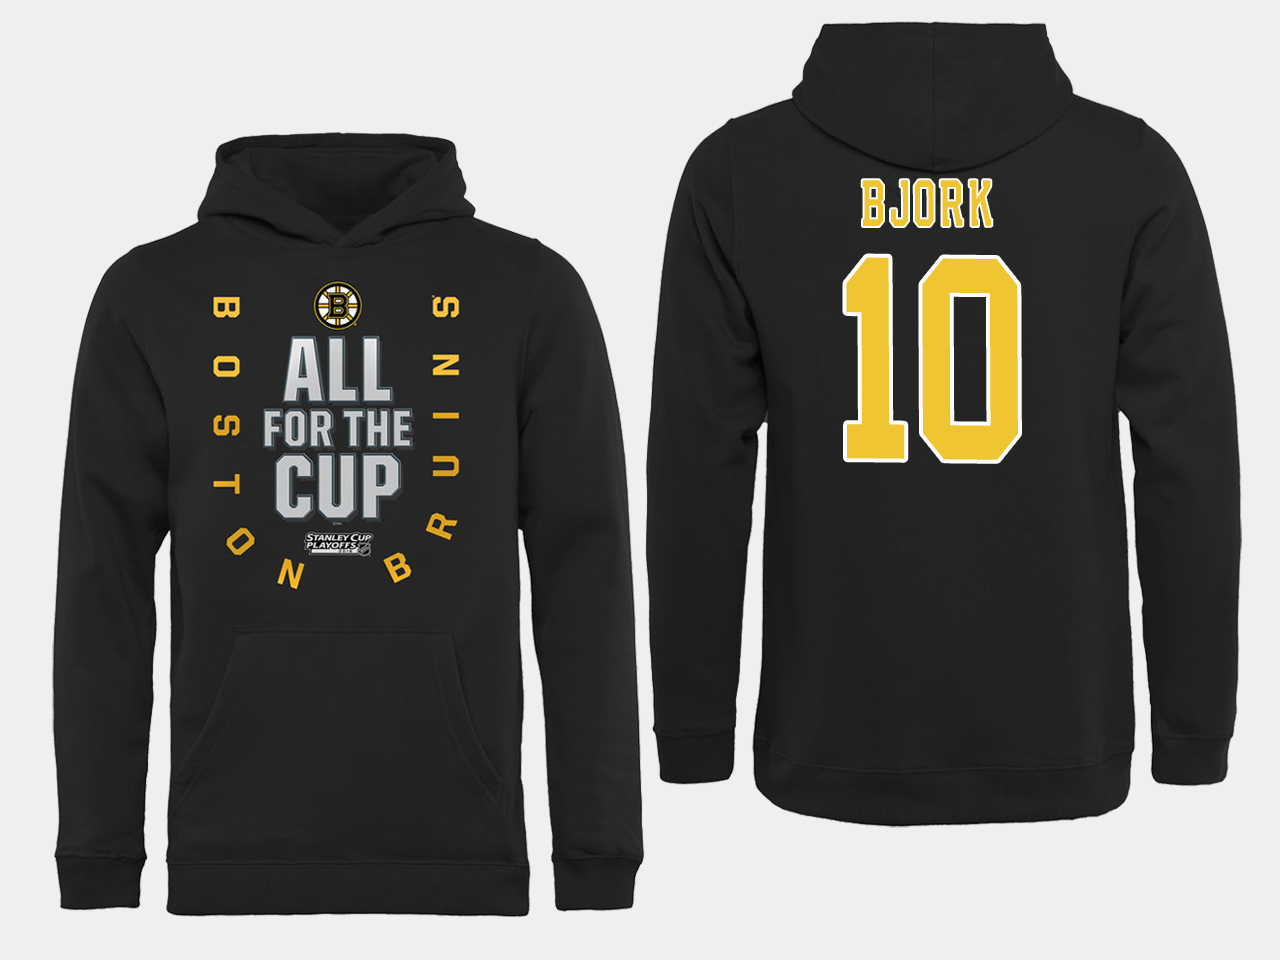 NHL Men Boston Bruins 10 Bjork Black All for the Cup Hoodie